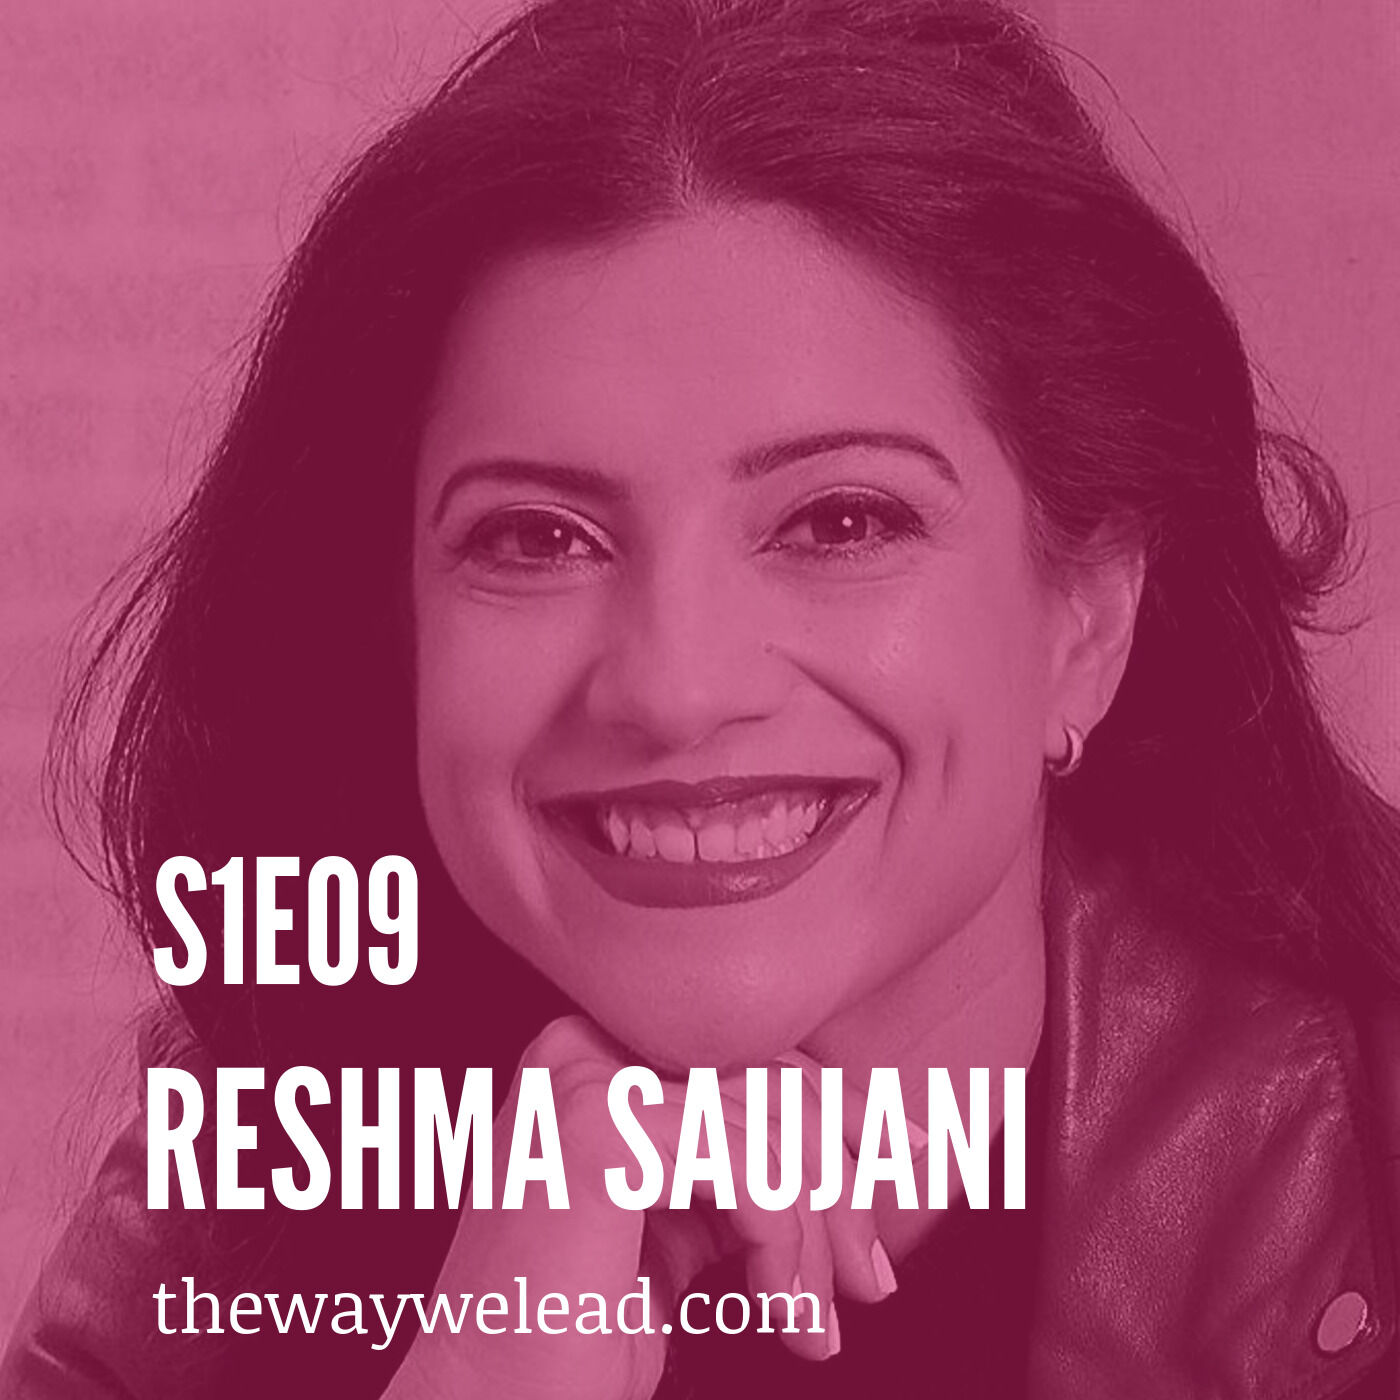 S1E9: Using Bravery as a Tool to Empower Women and Girls with Reshma Saujani